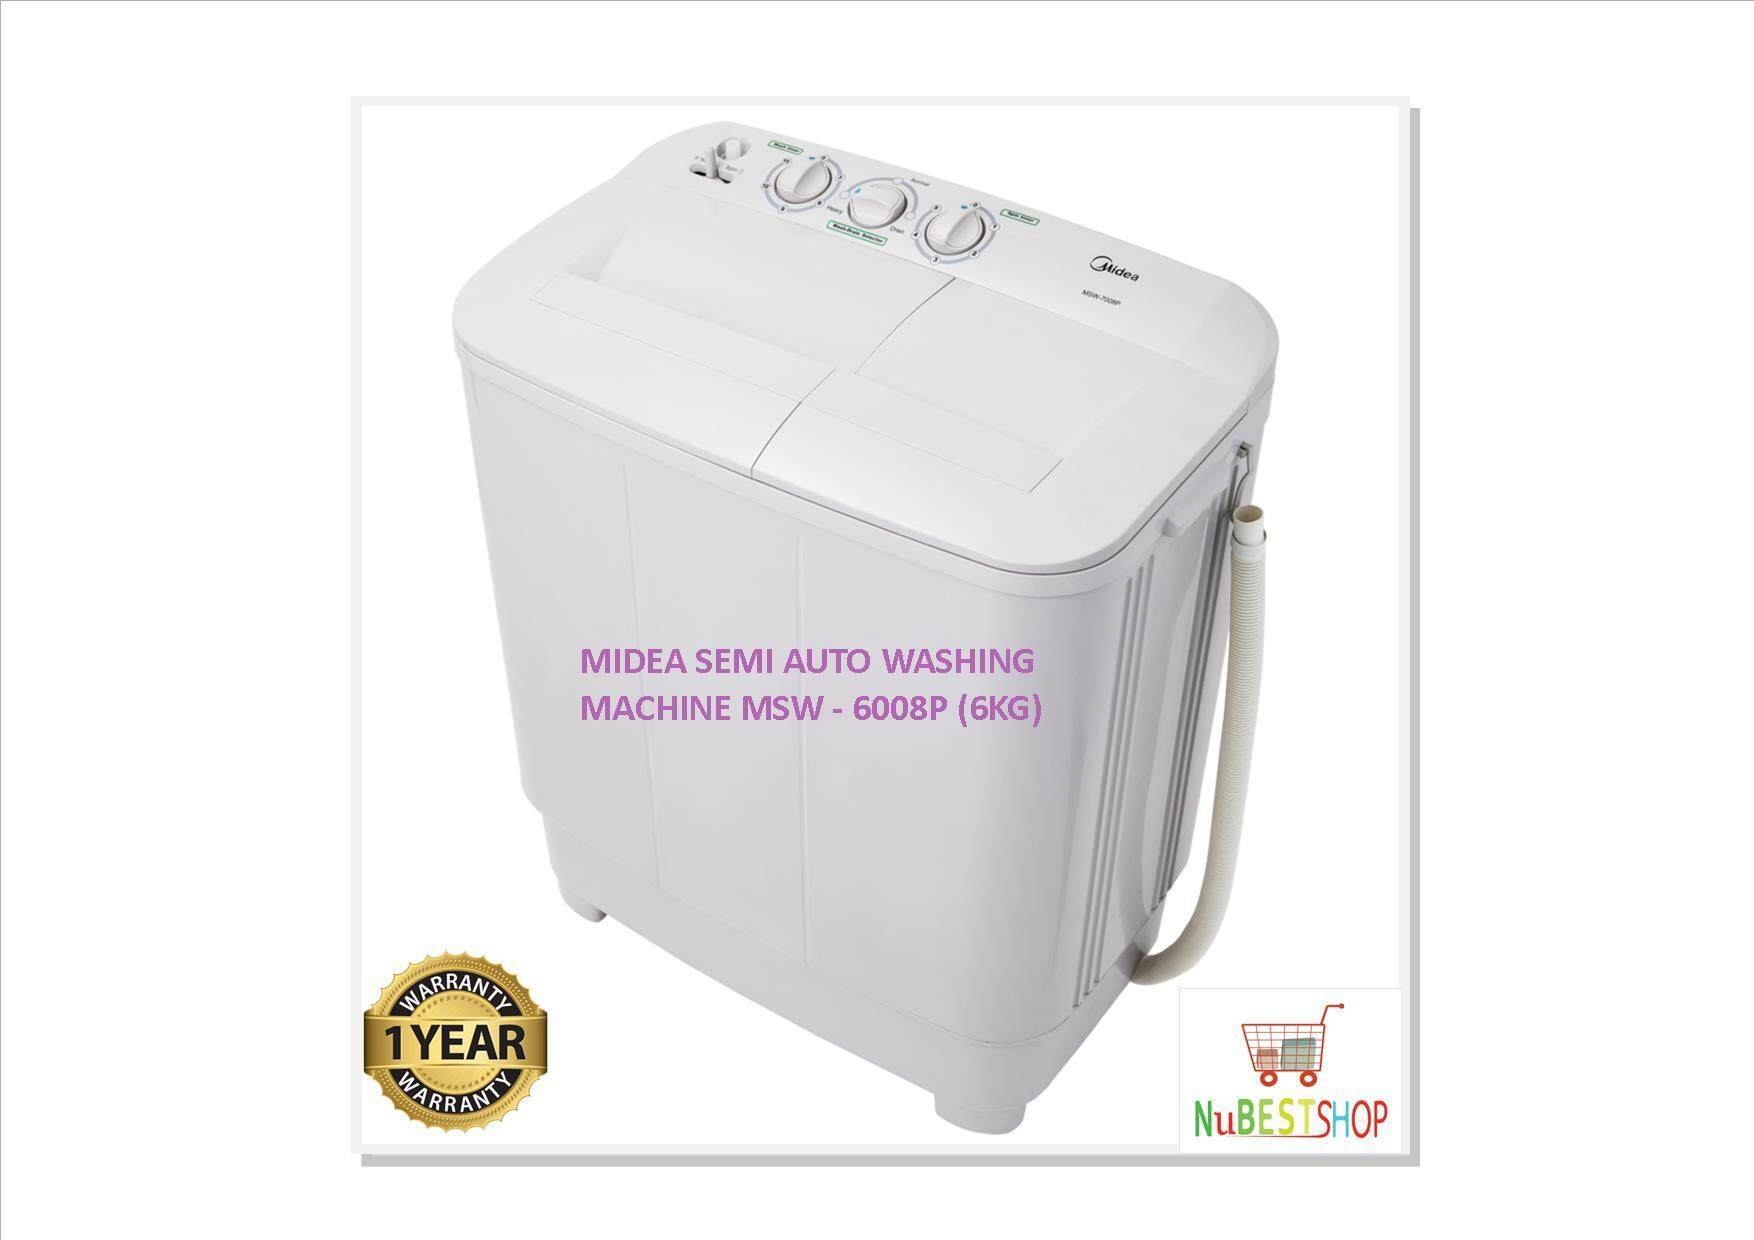 MIDEA 6KG SEMI AUTO WASHING MACHINE MSW - 6008P